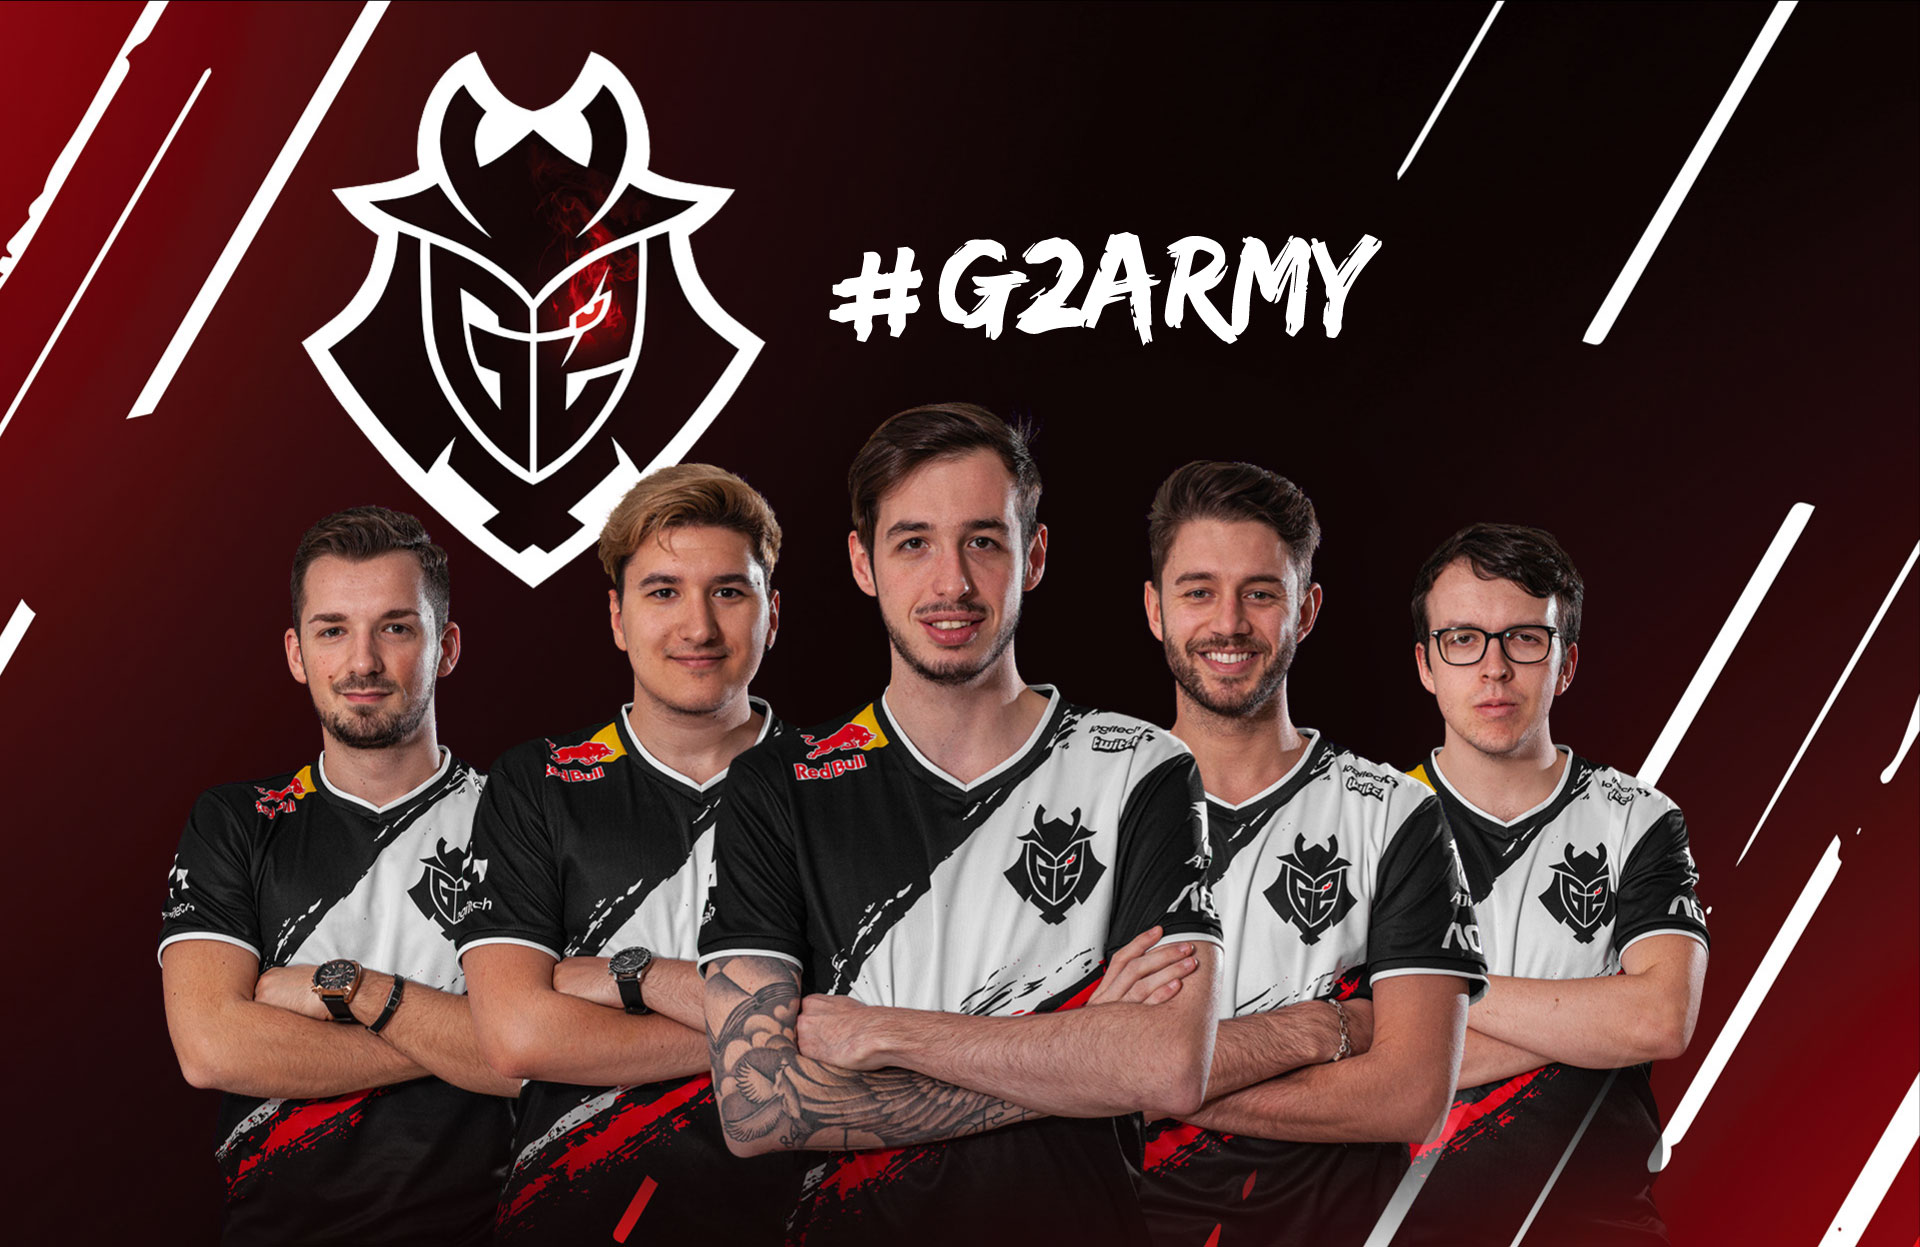 team of G2ARMY